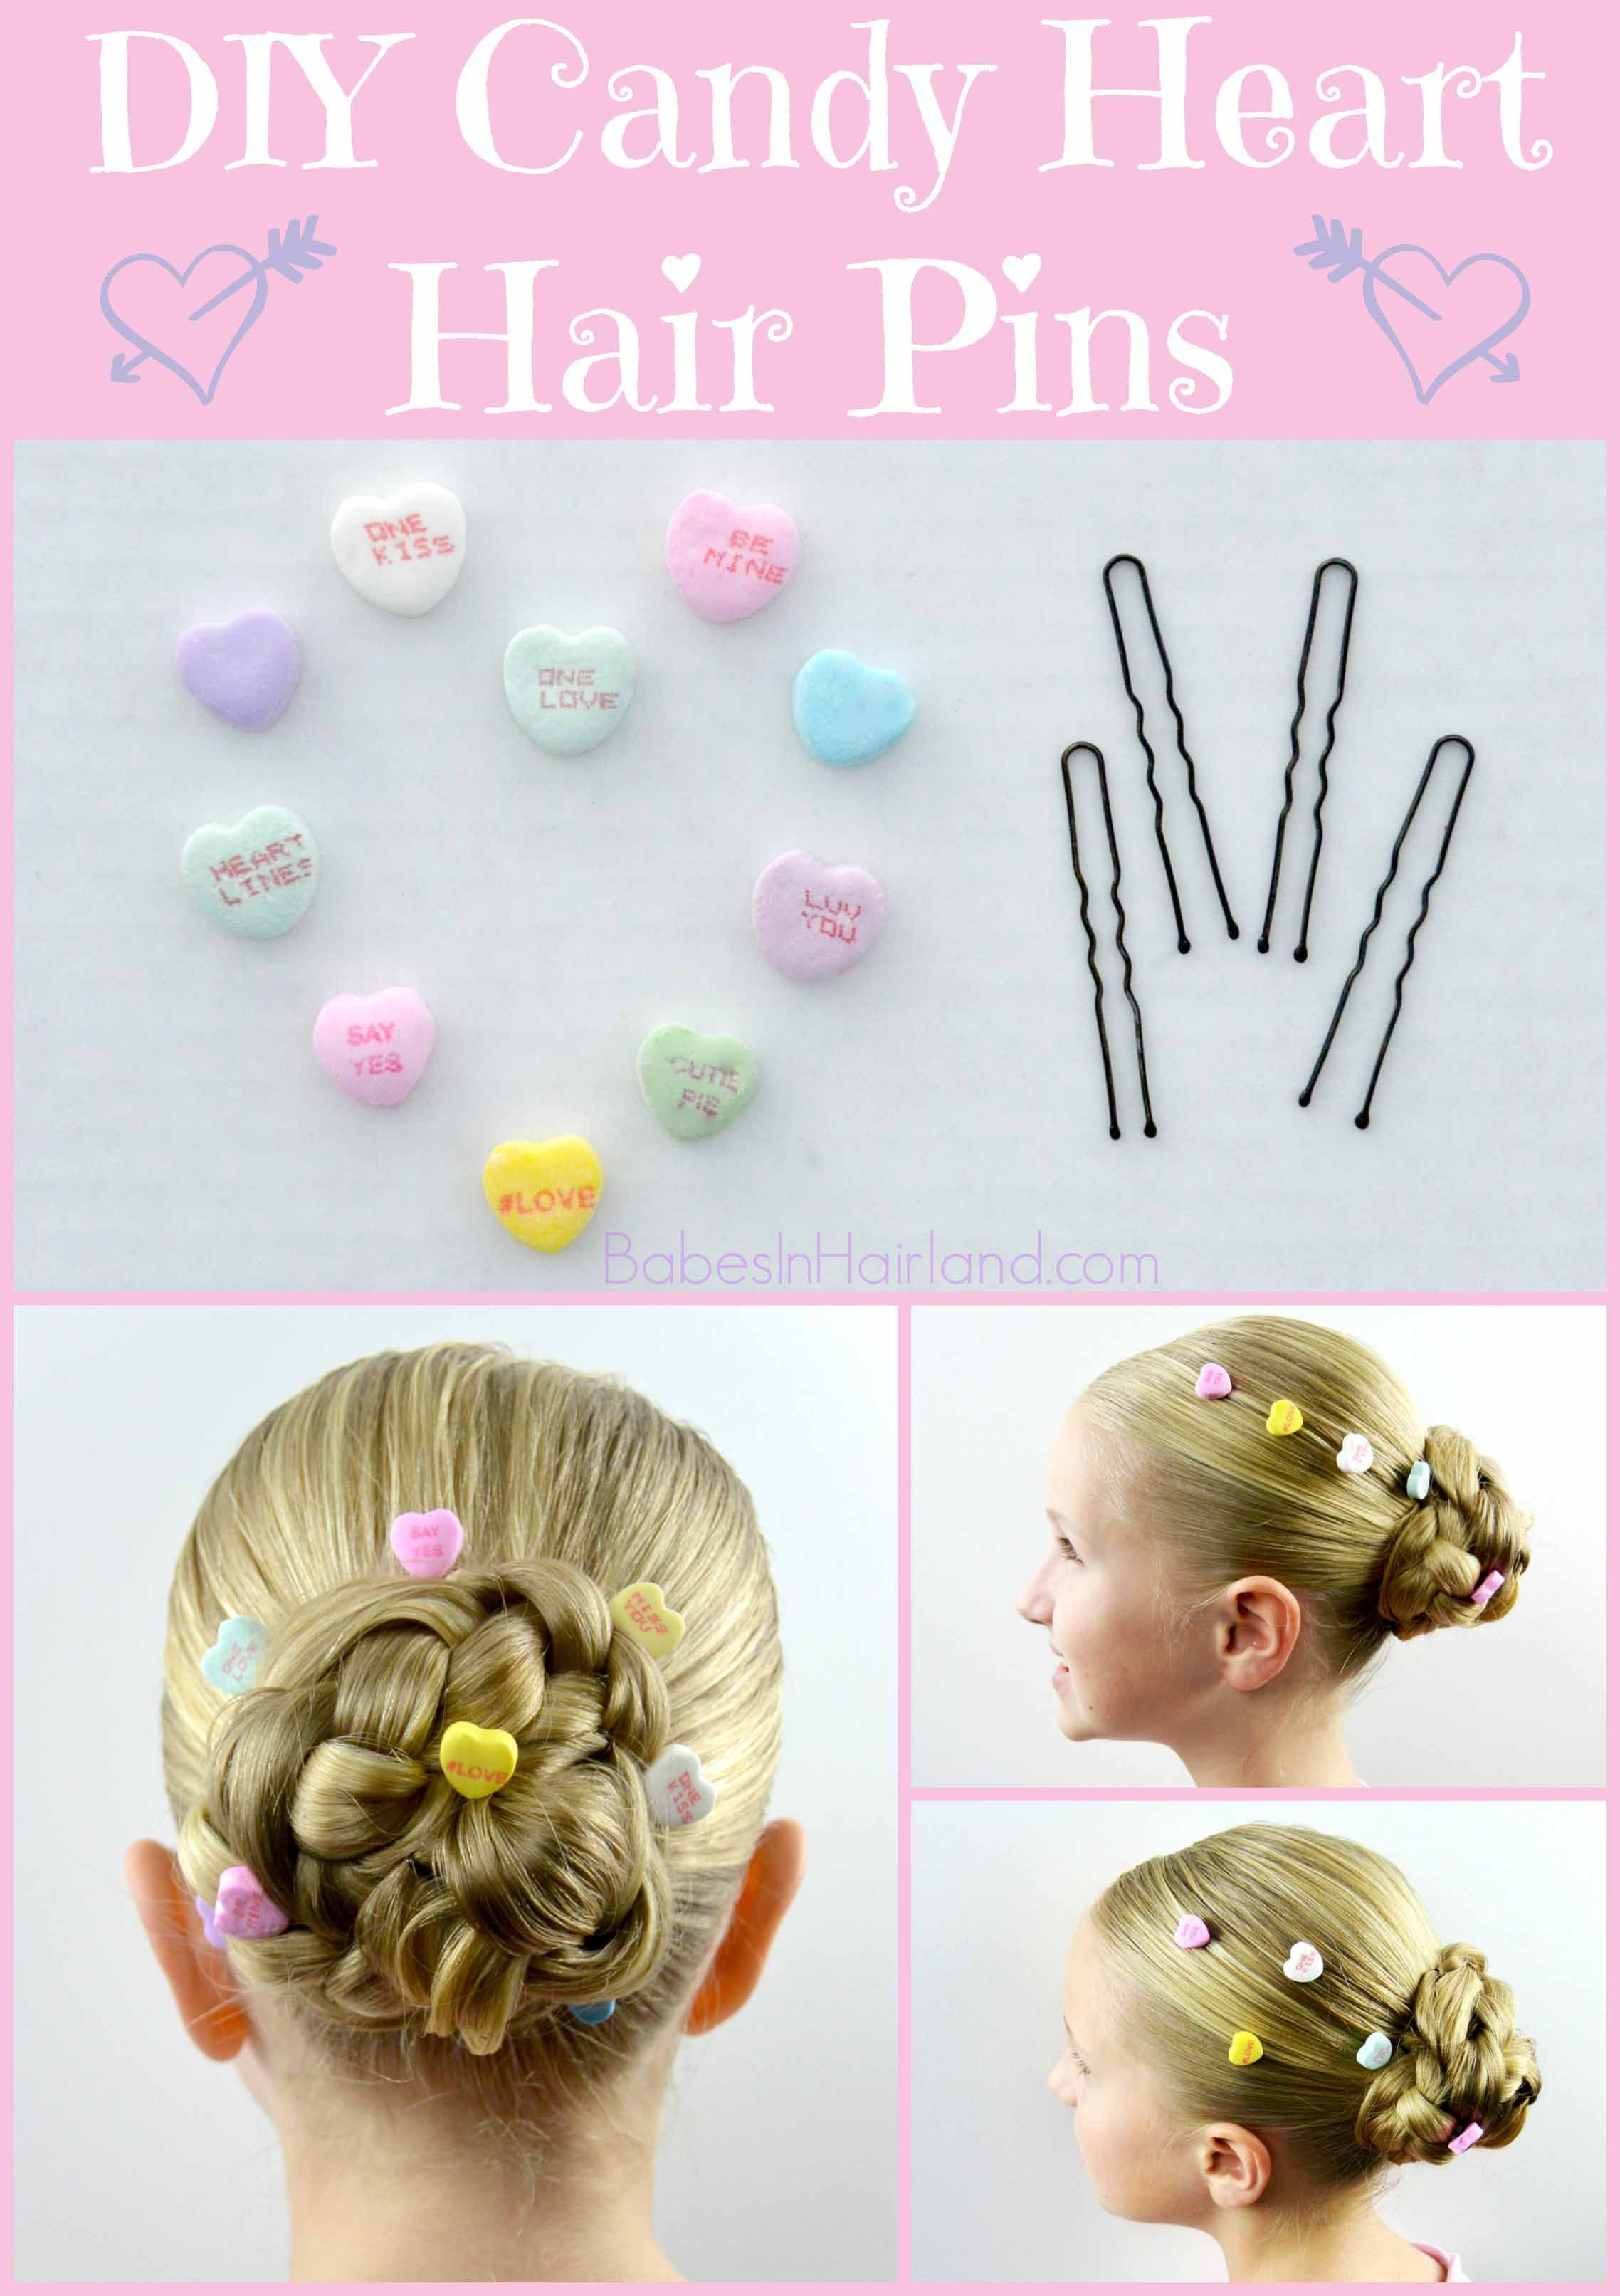 DIY Candy Heart Hair Accessories for Valentine's Day ...